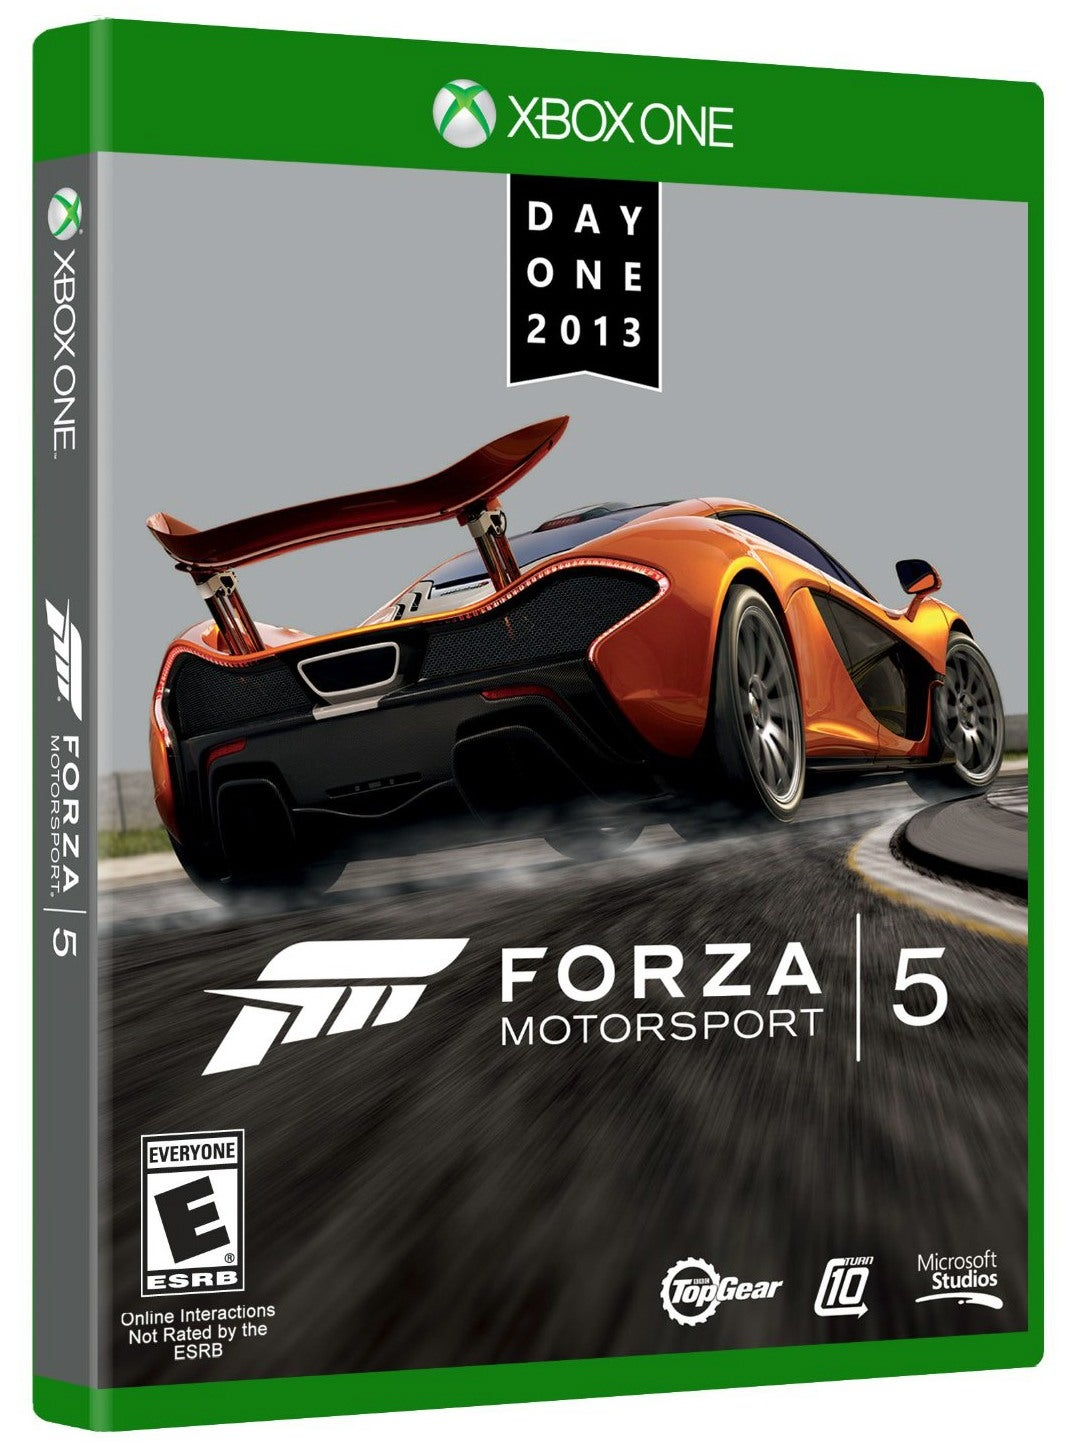 Forza Motorsport 5/Day One Edition